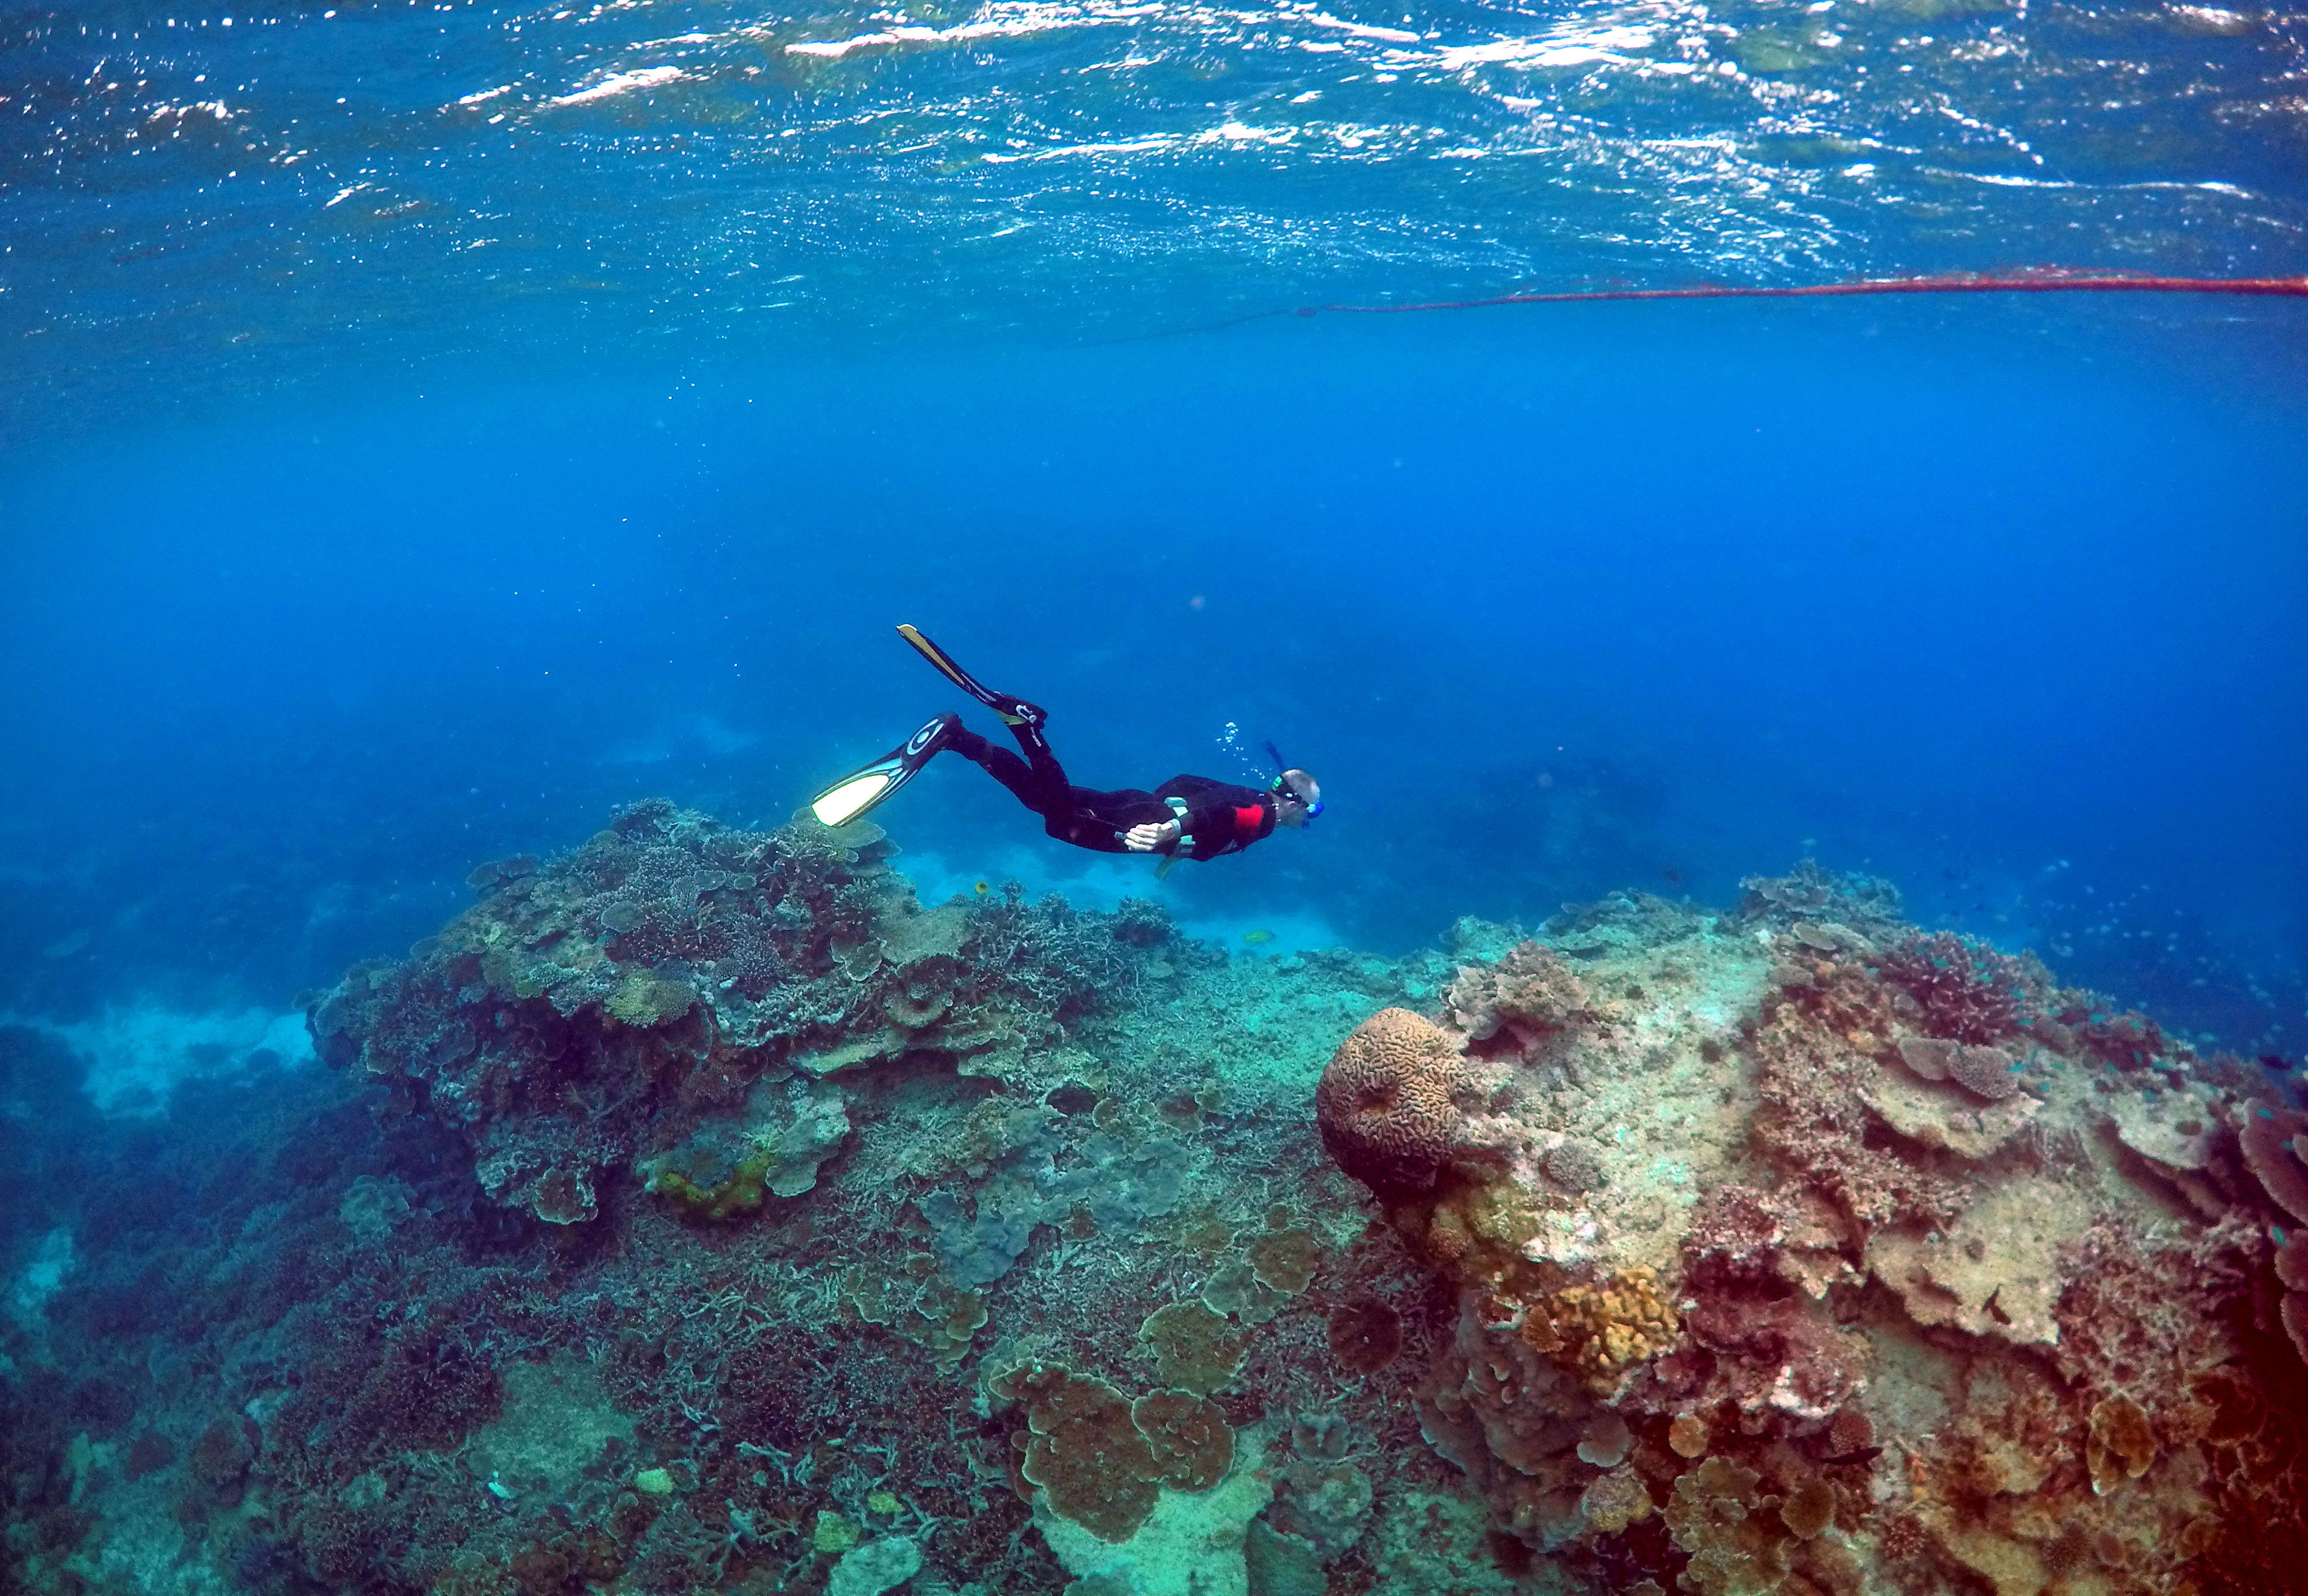 A photograph taken underwater of a diver swimming over a coral reef.